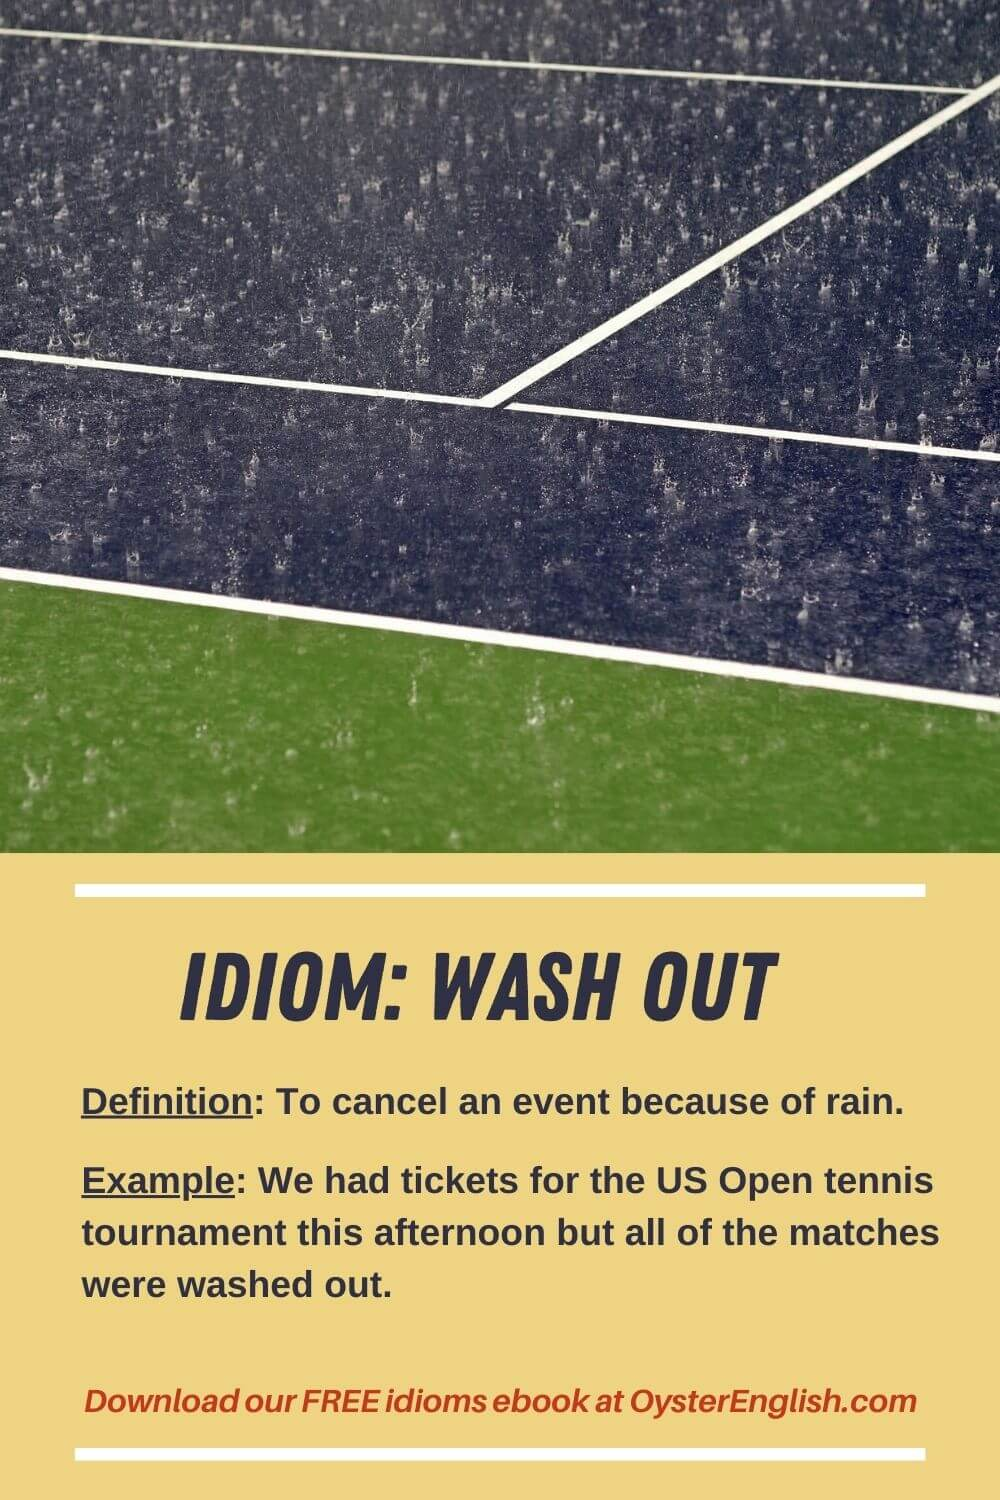 A downpour (lots of rain) on a tennis court: We had tickets for the US Open tennis tournament this afternoon but all of the matches were washed out.